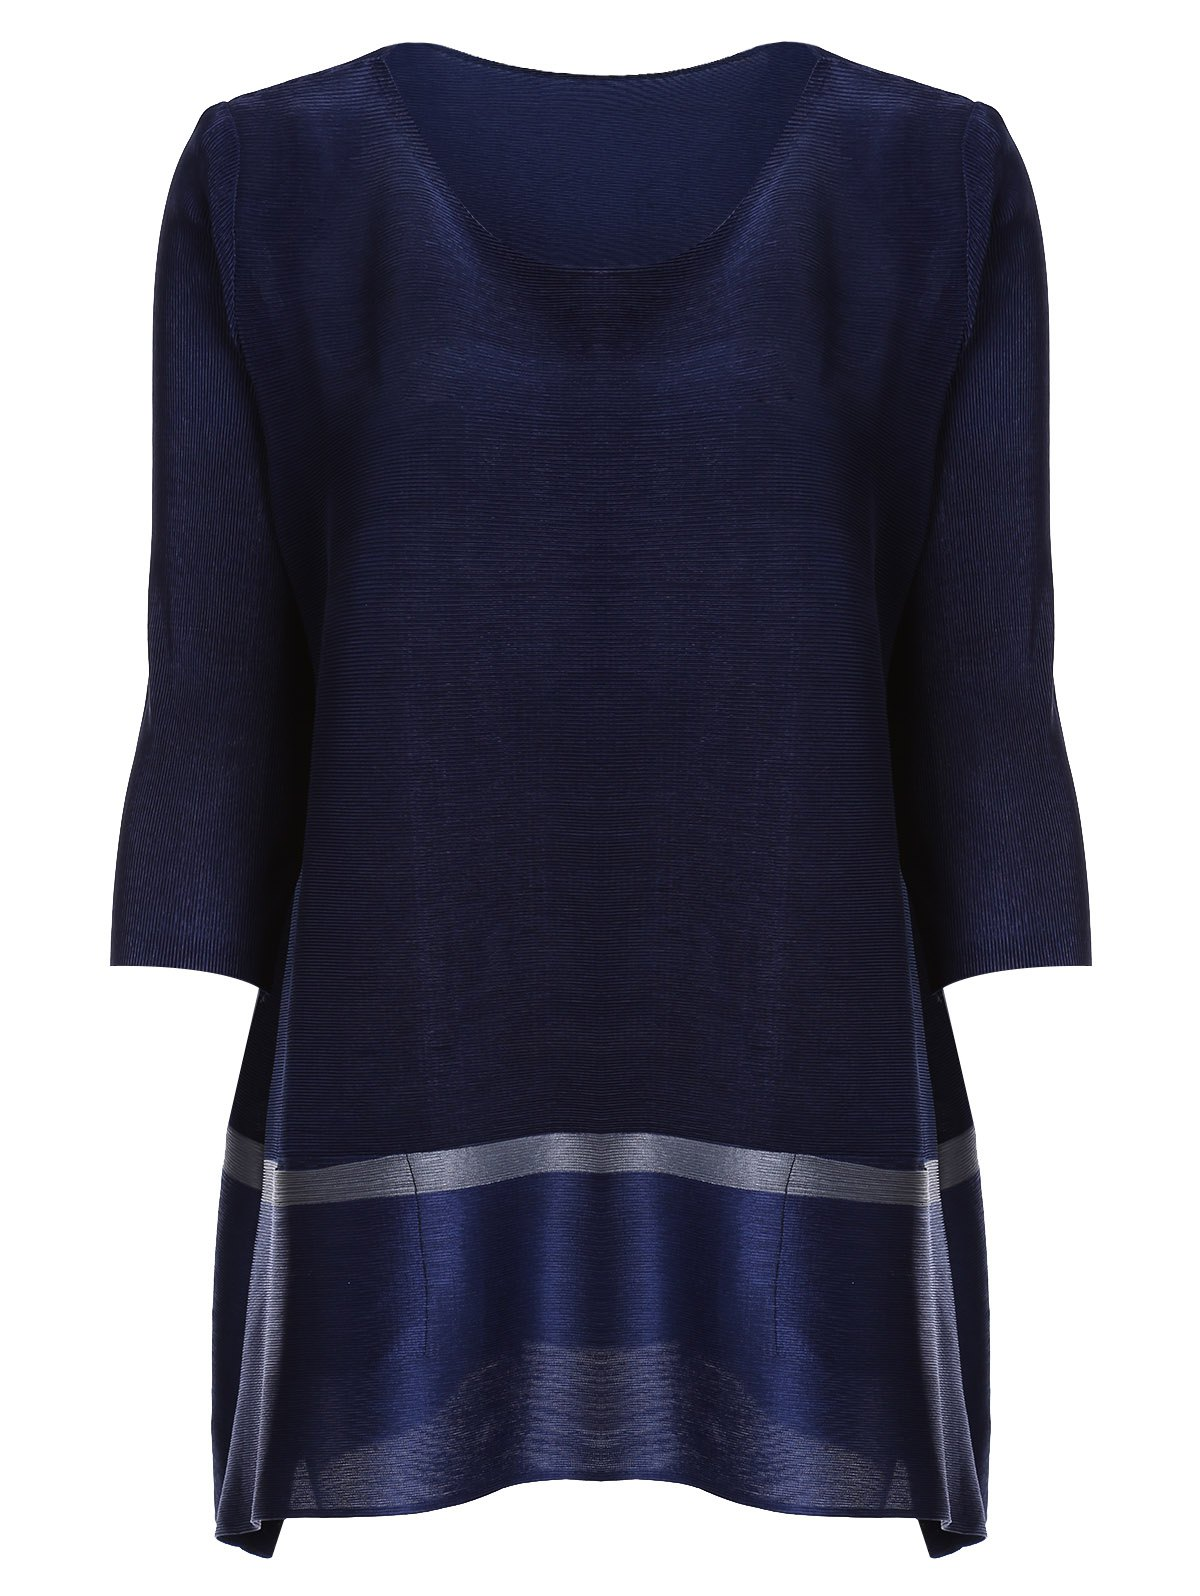 Chic 3/4 Sleeve Scoop Neck Pocket Design Women's Blouse - DEEP BLUE ONE SIZE(FIT SIZE XS TO M)